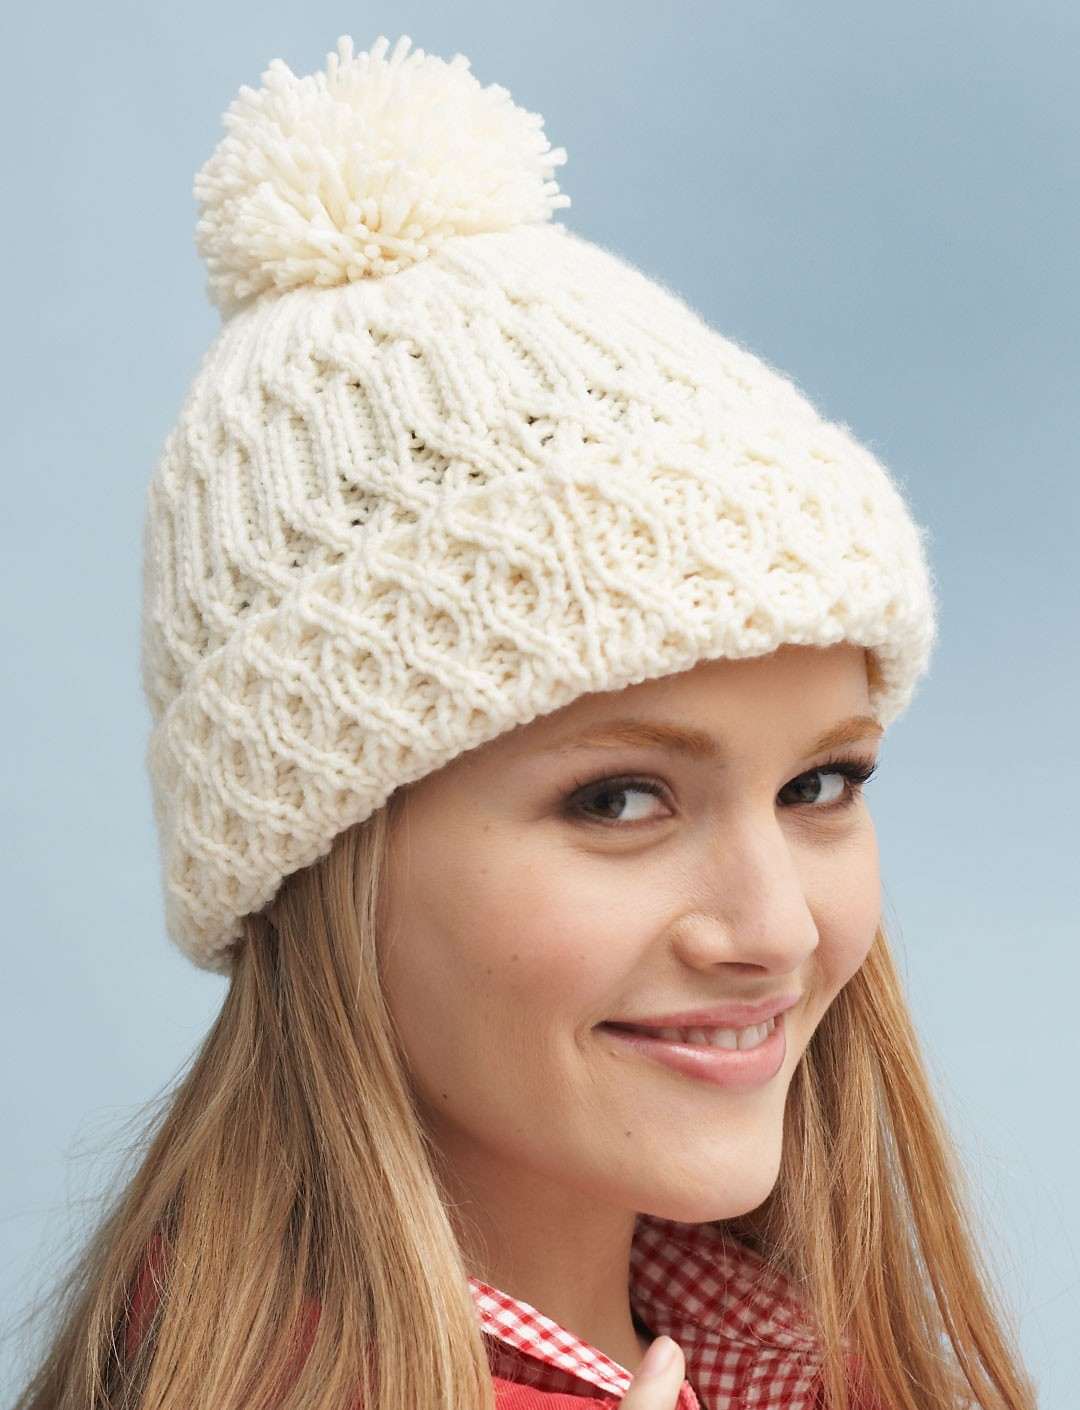 Aran Knitting Patterns Free The Easy Hat Knitting Patterns Cottageartcreations